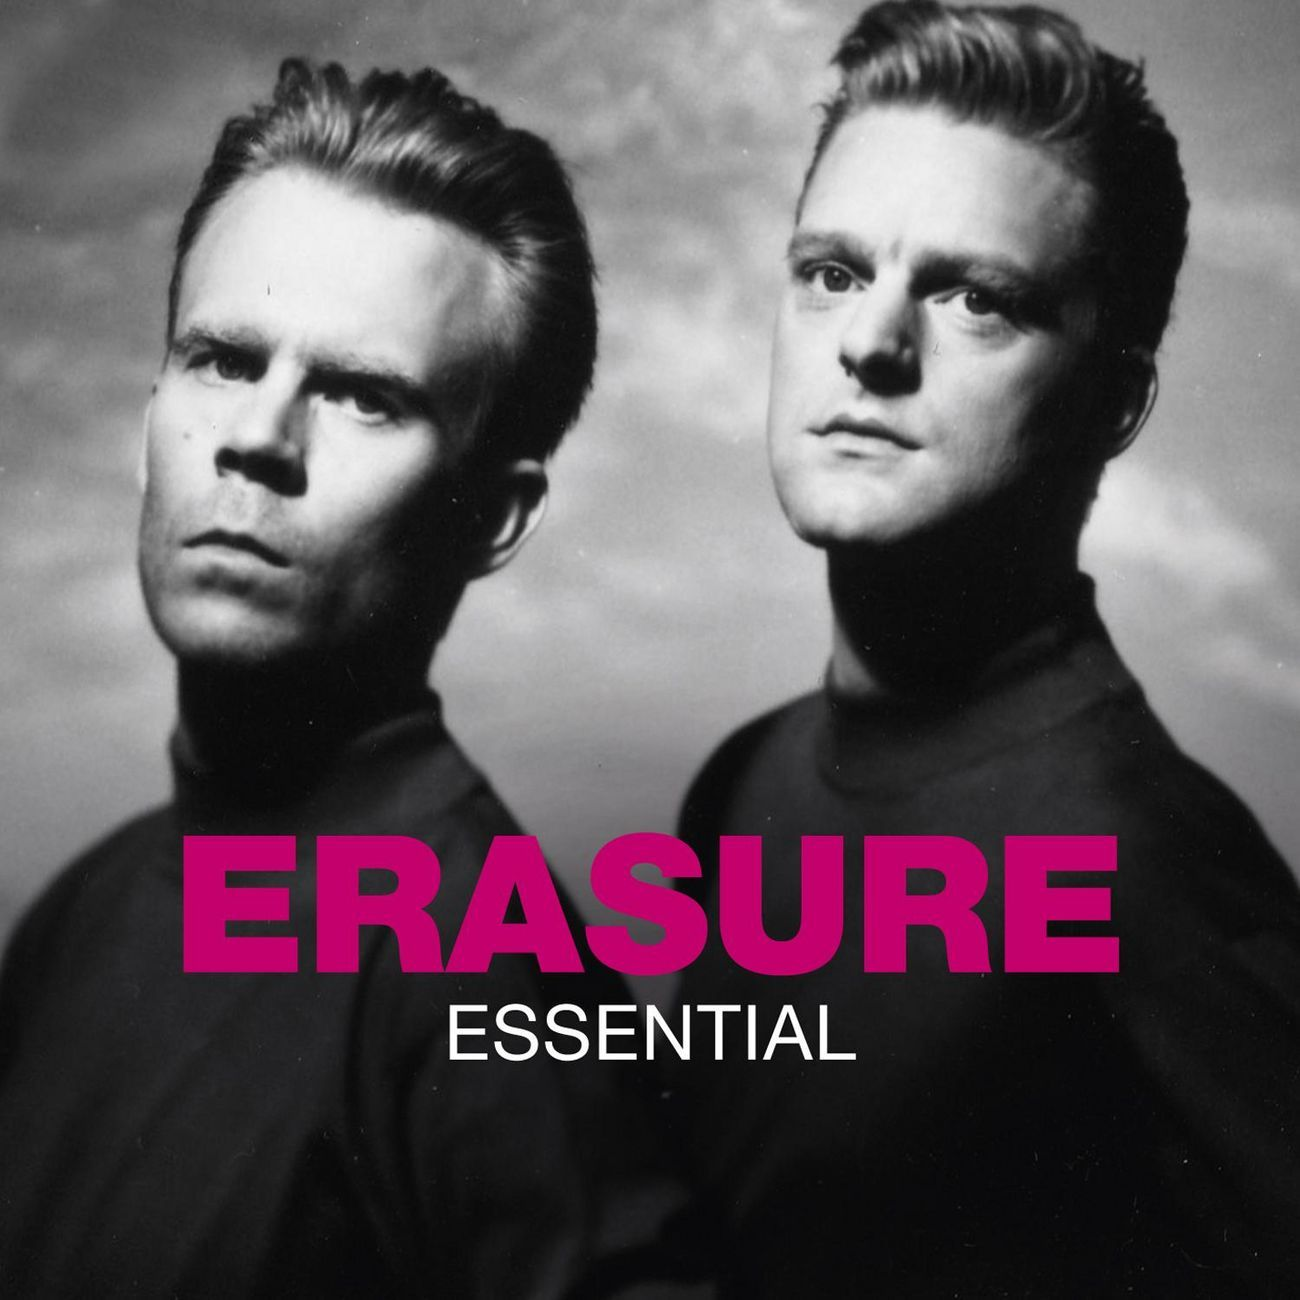 Erasure Album Covers | Black and White Album Covers | It Must Be the Illuminati from the Pop Shop America Blog